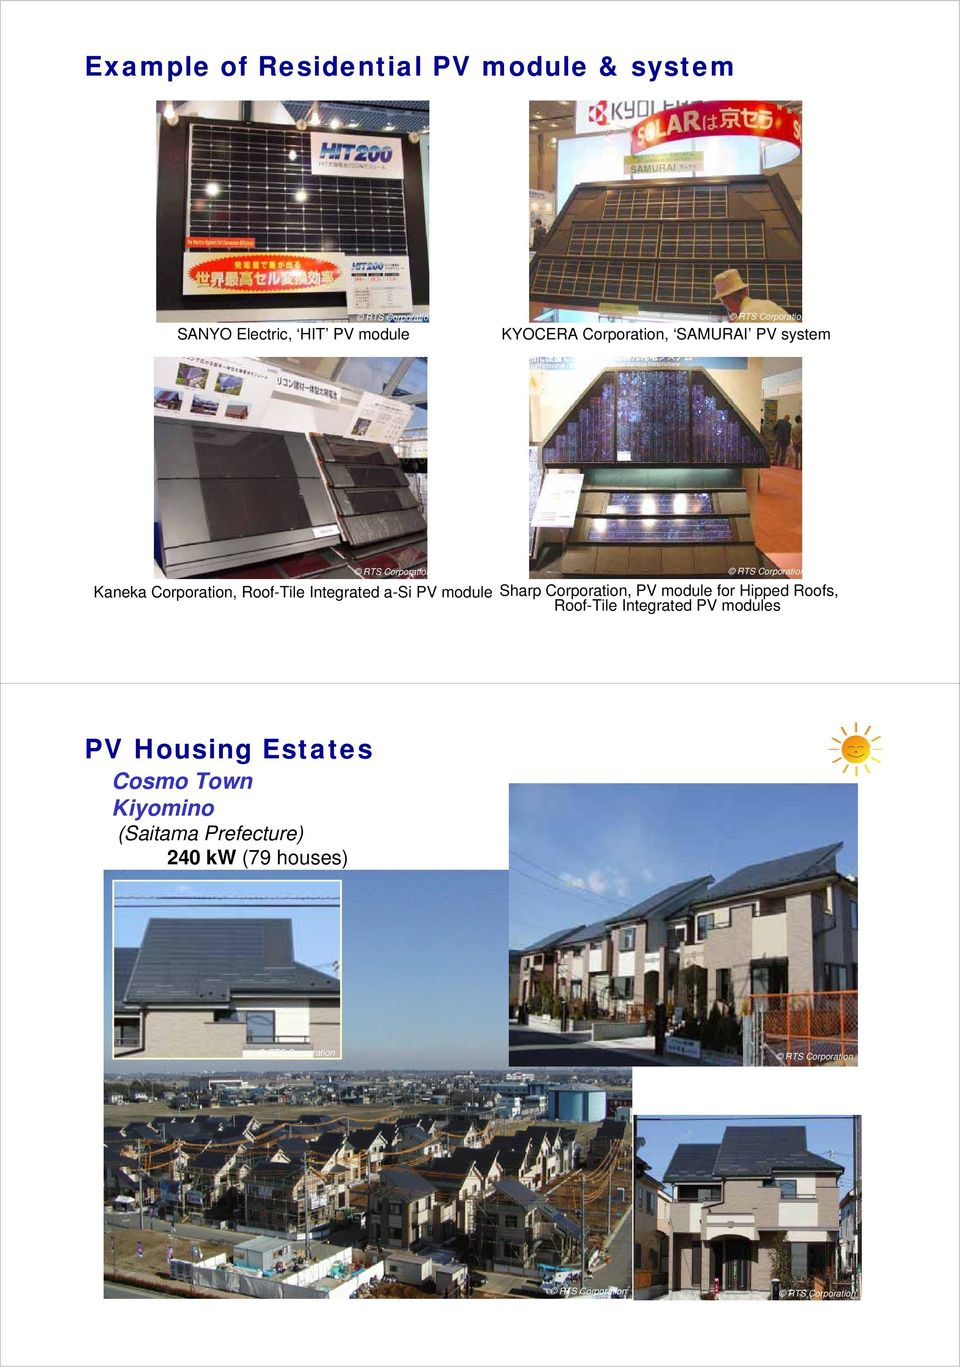 module Sharp Corporation, PV module for Hipped Roofs, Roof-Tile Integrated PV modules PV Housing Estates Cosmo